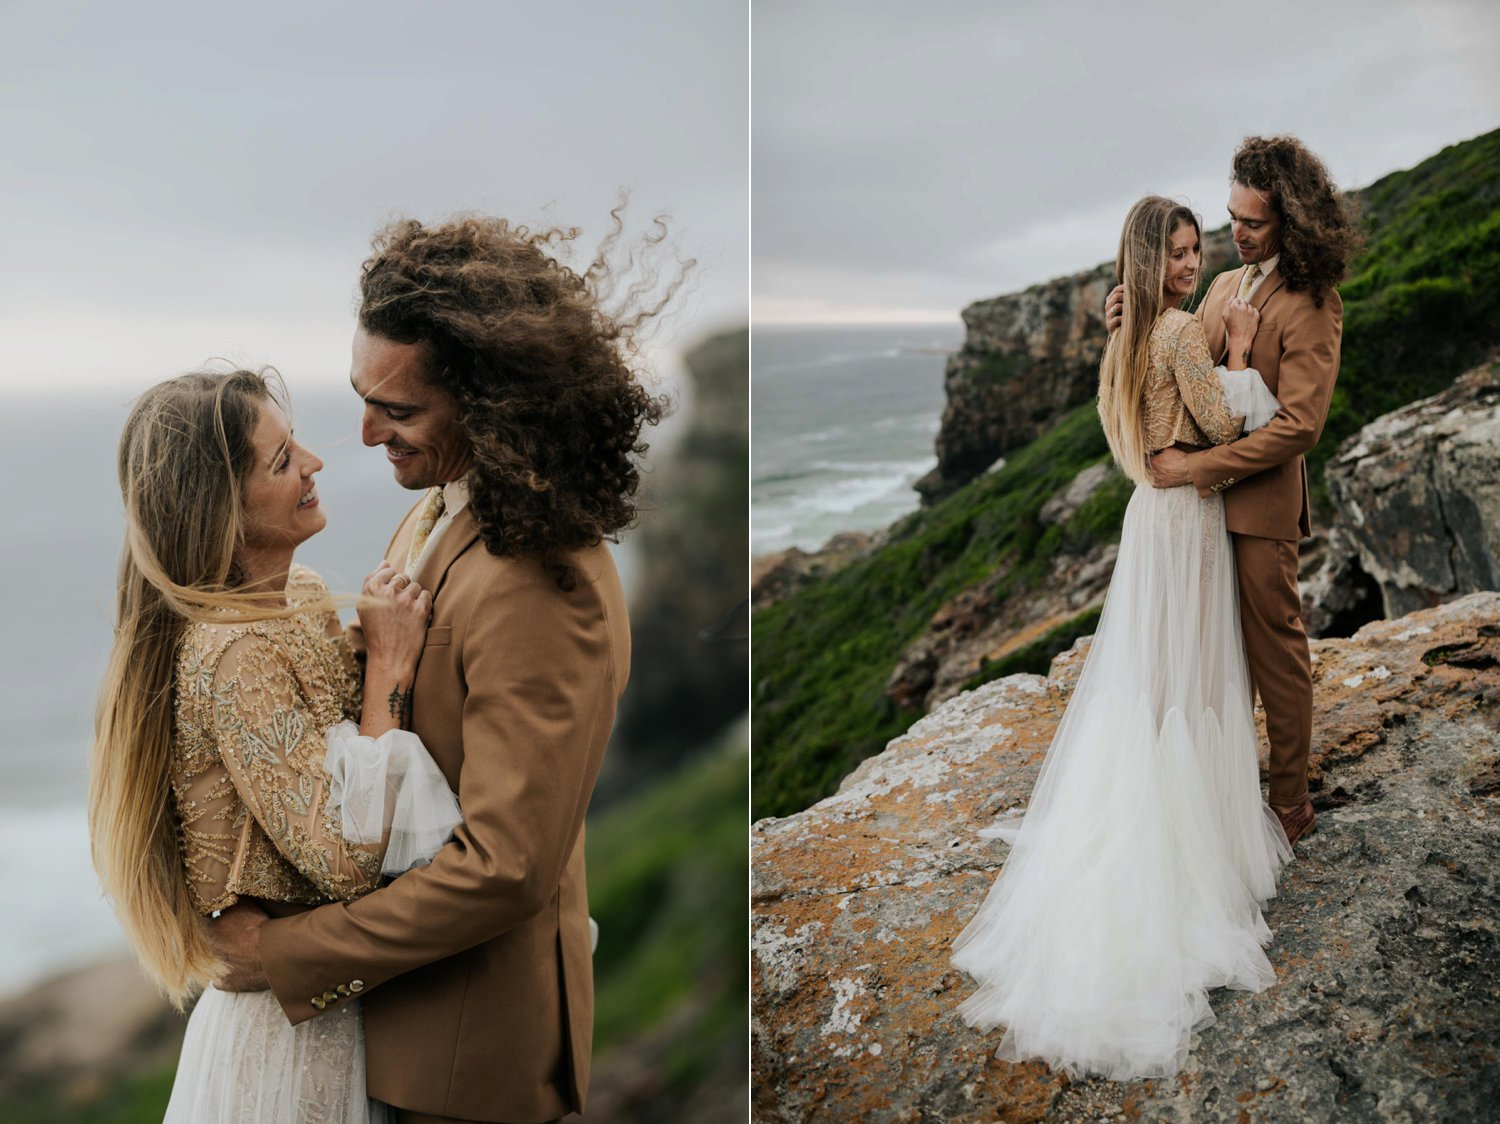 Wild and windy moody photo portrait session of bride and groom at the beach